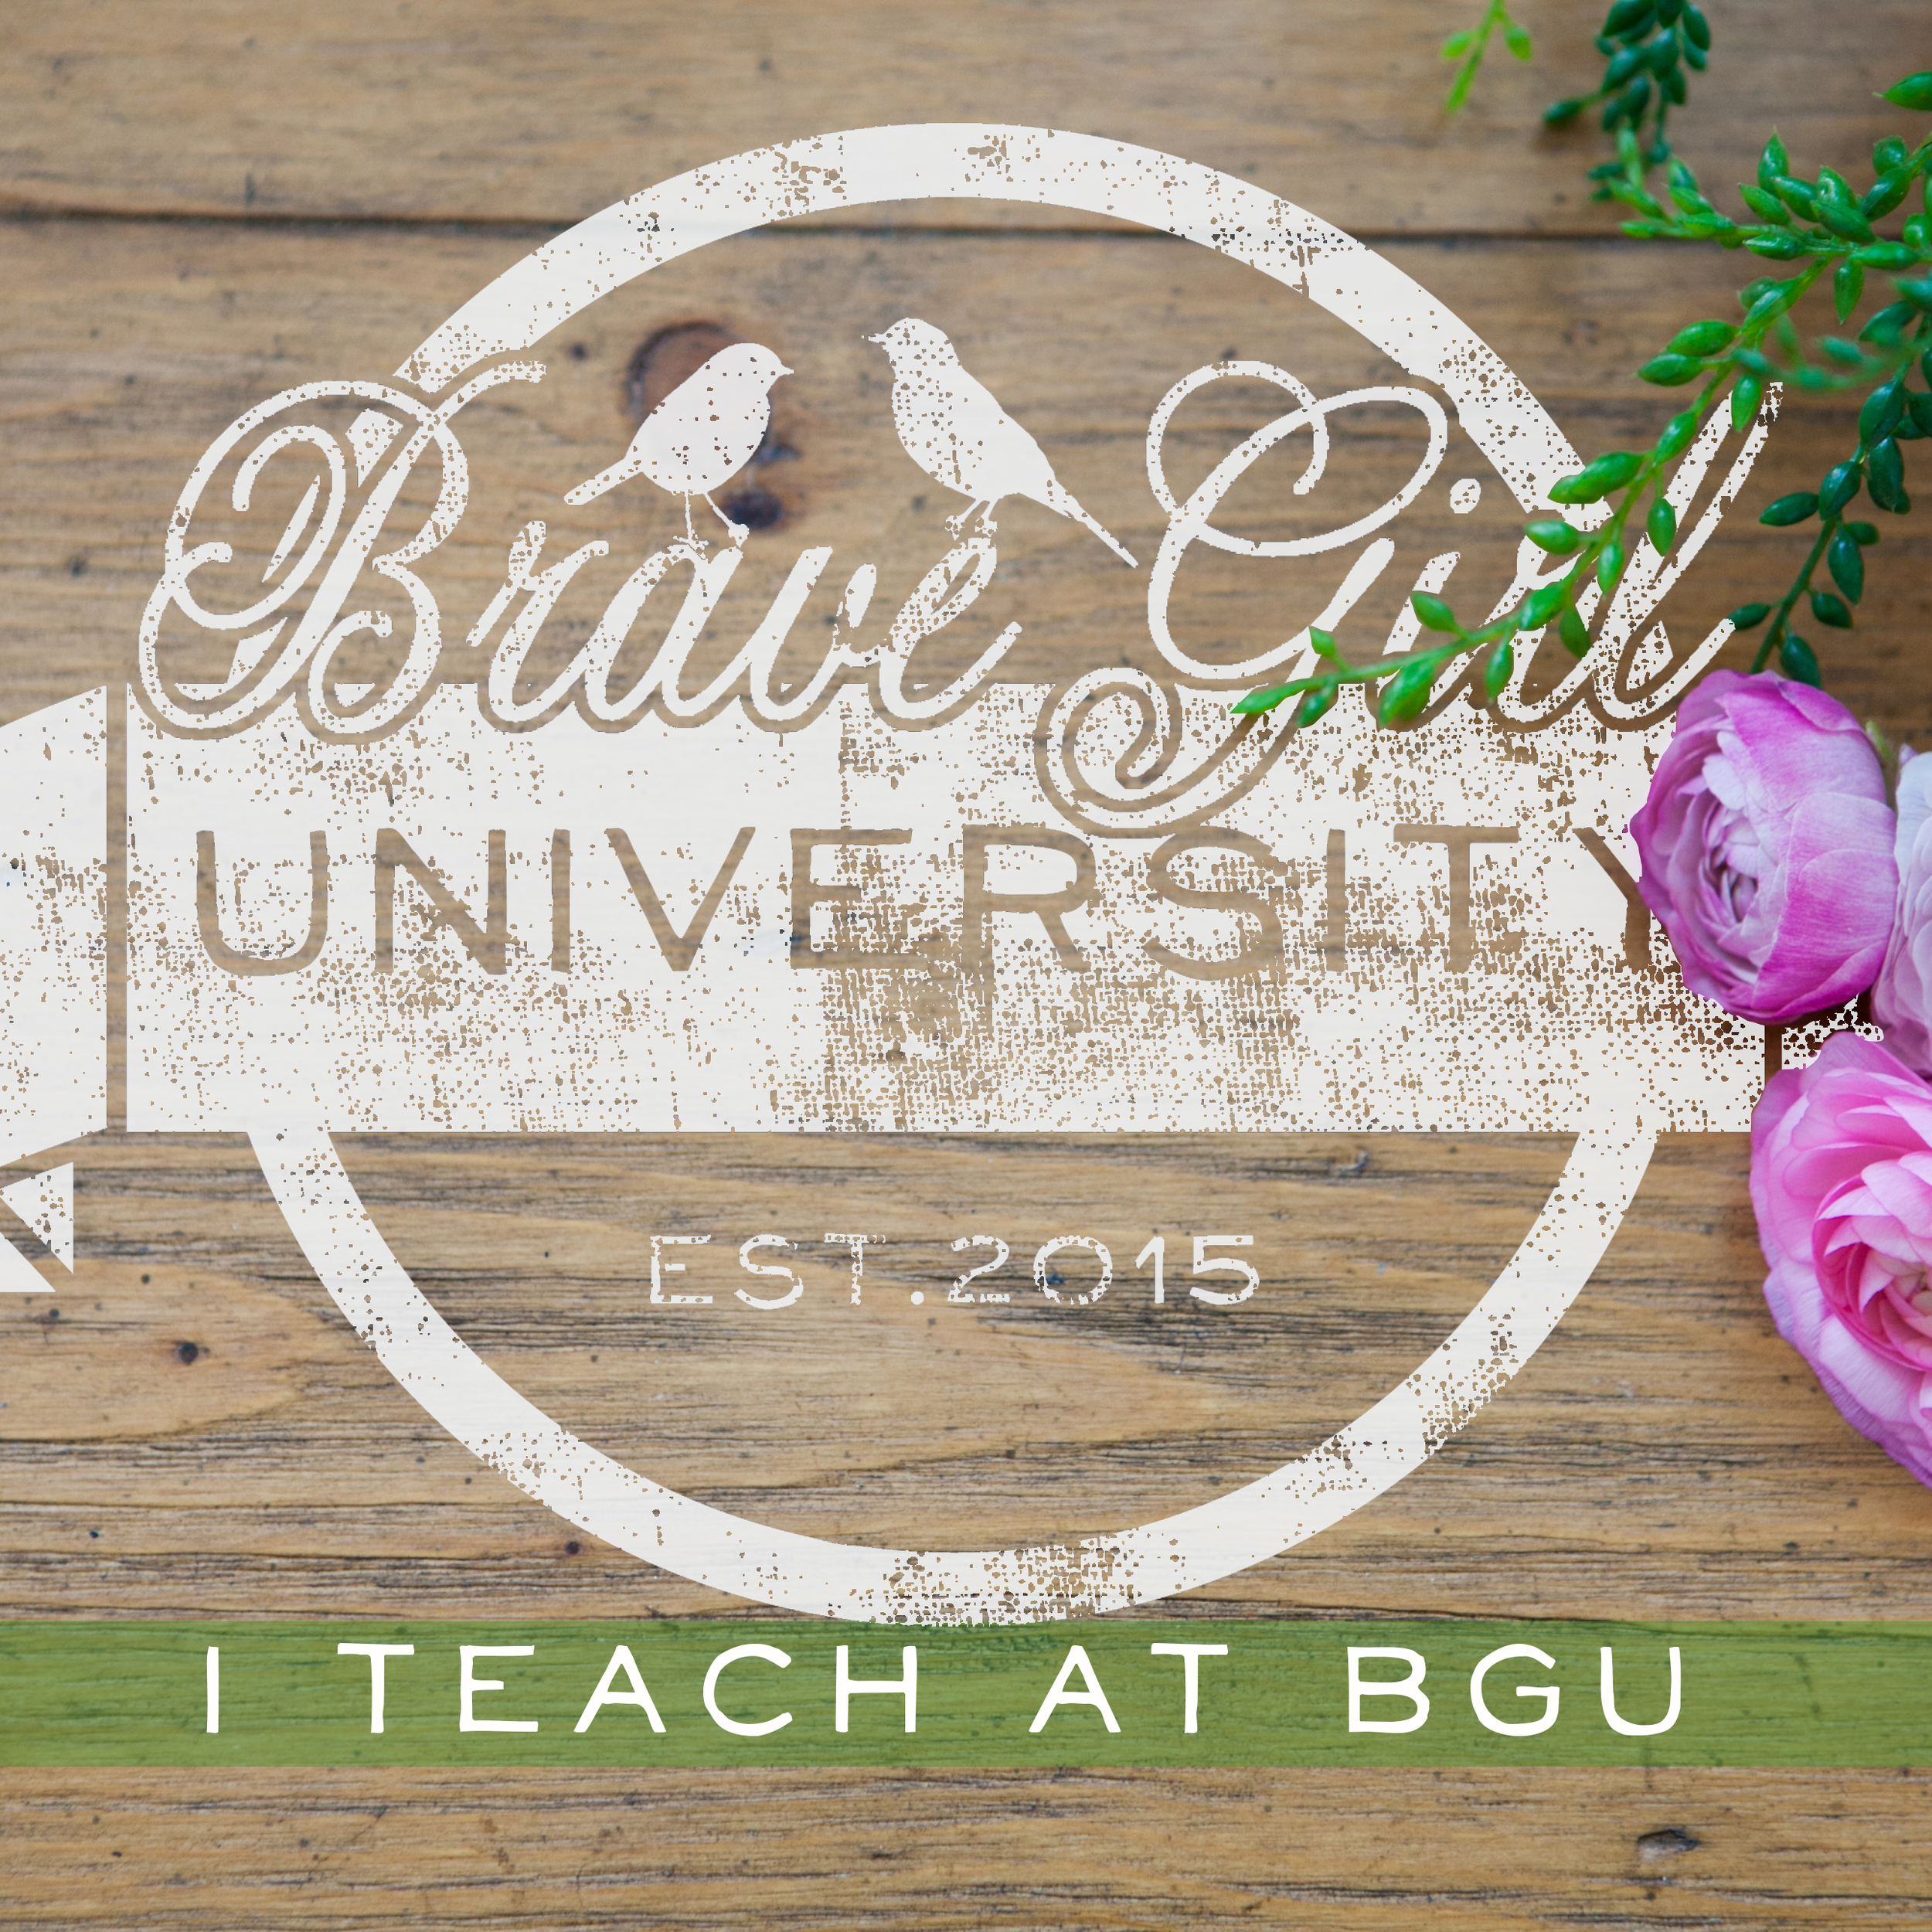 i-teach-at-bgu_flowers_square.jpg